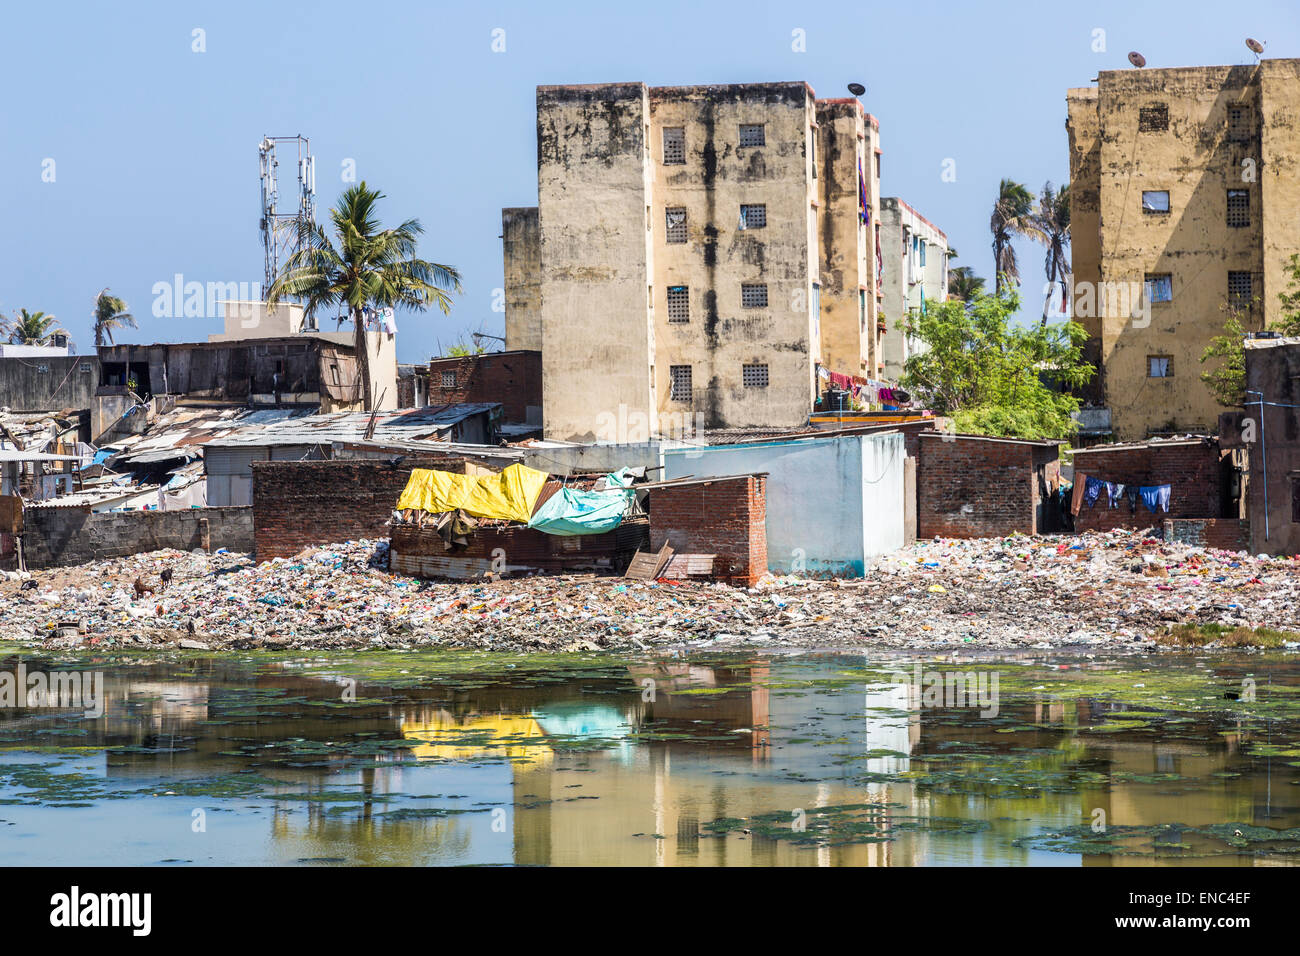 Slums on banks of the polluted Adyar River estuary in Chennai, Tamil Nadu, southern India: squalor and third world - Stock Image